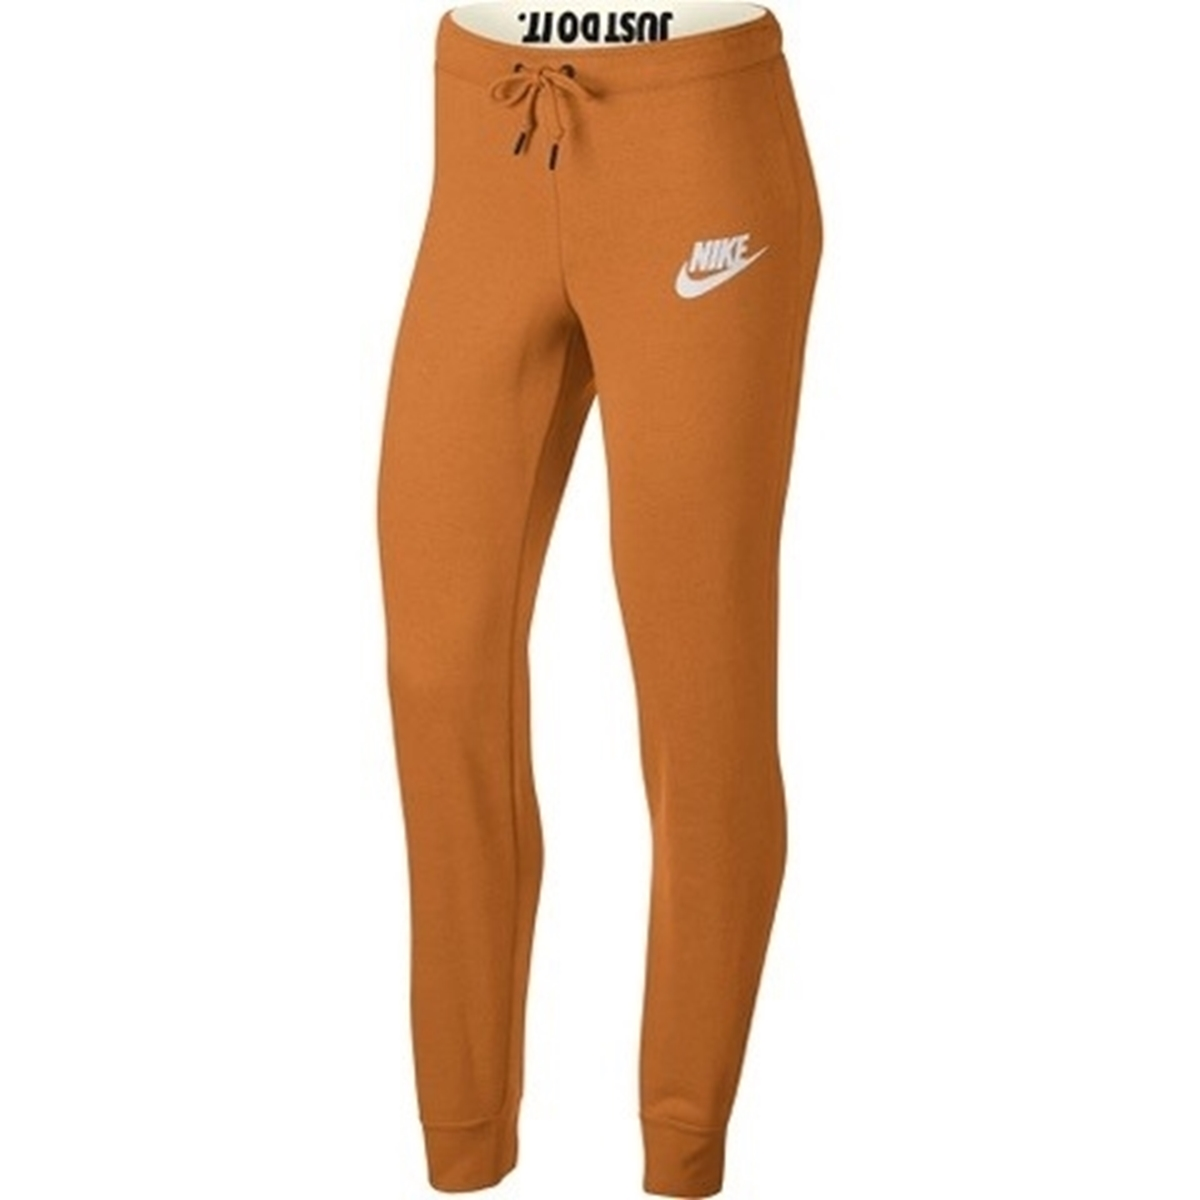 Bilde av Nike W Nsw Rally Pant Tight Monarc/White 931875-846